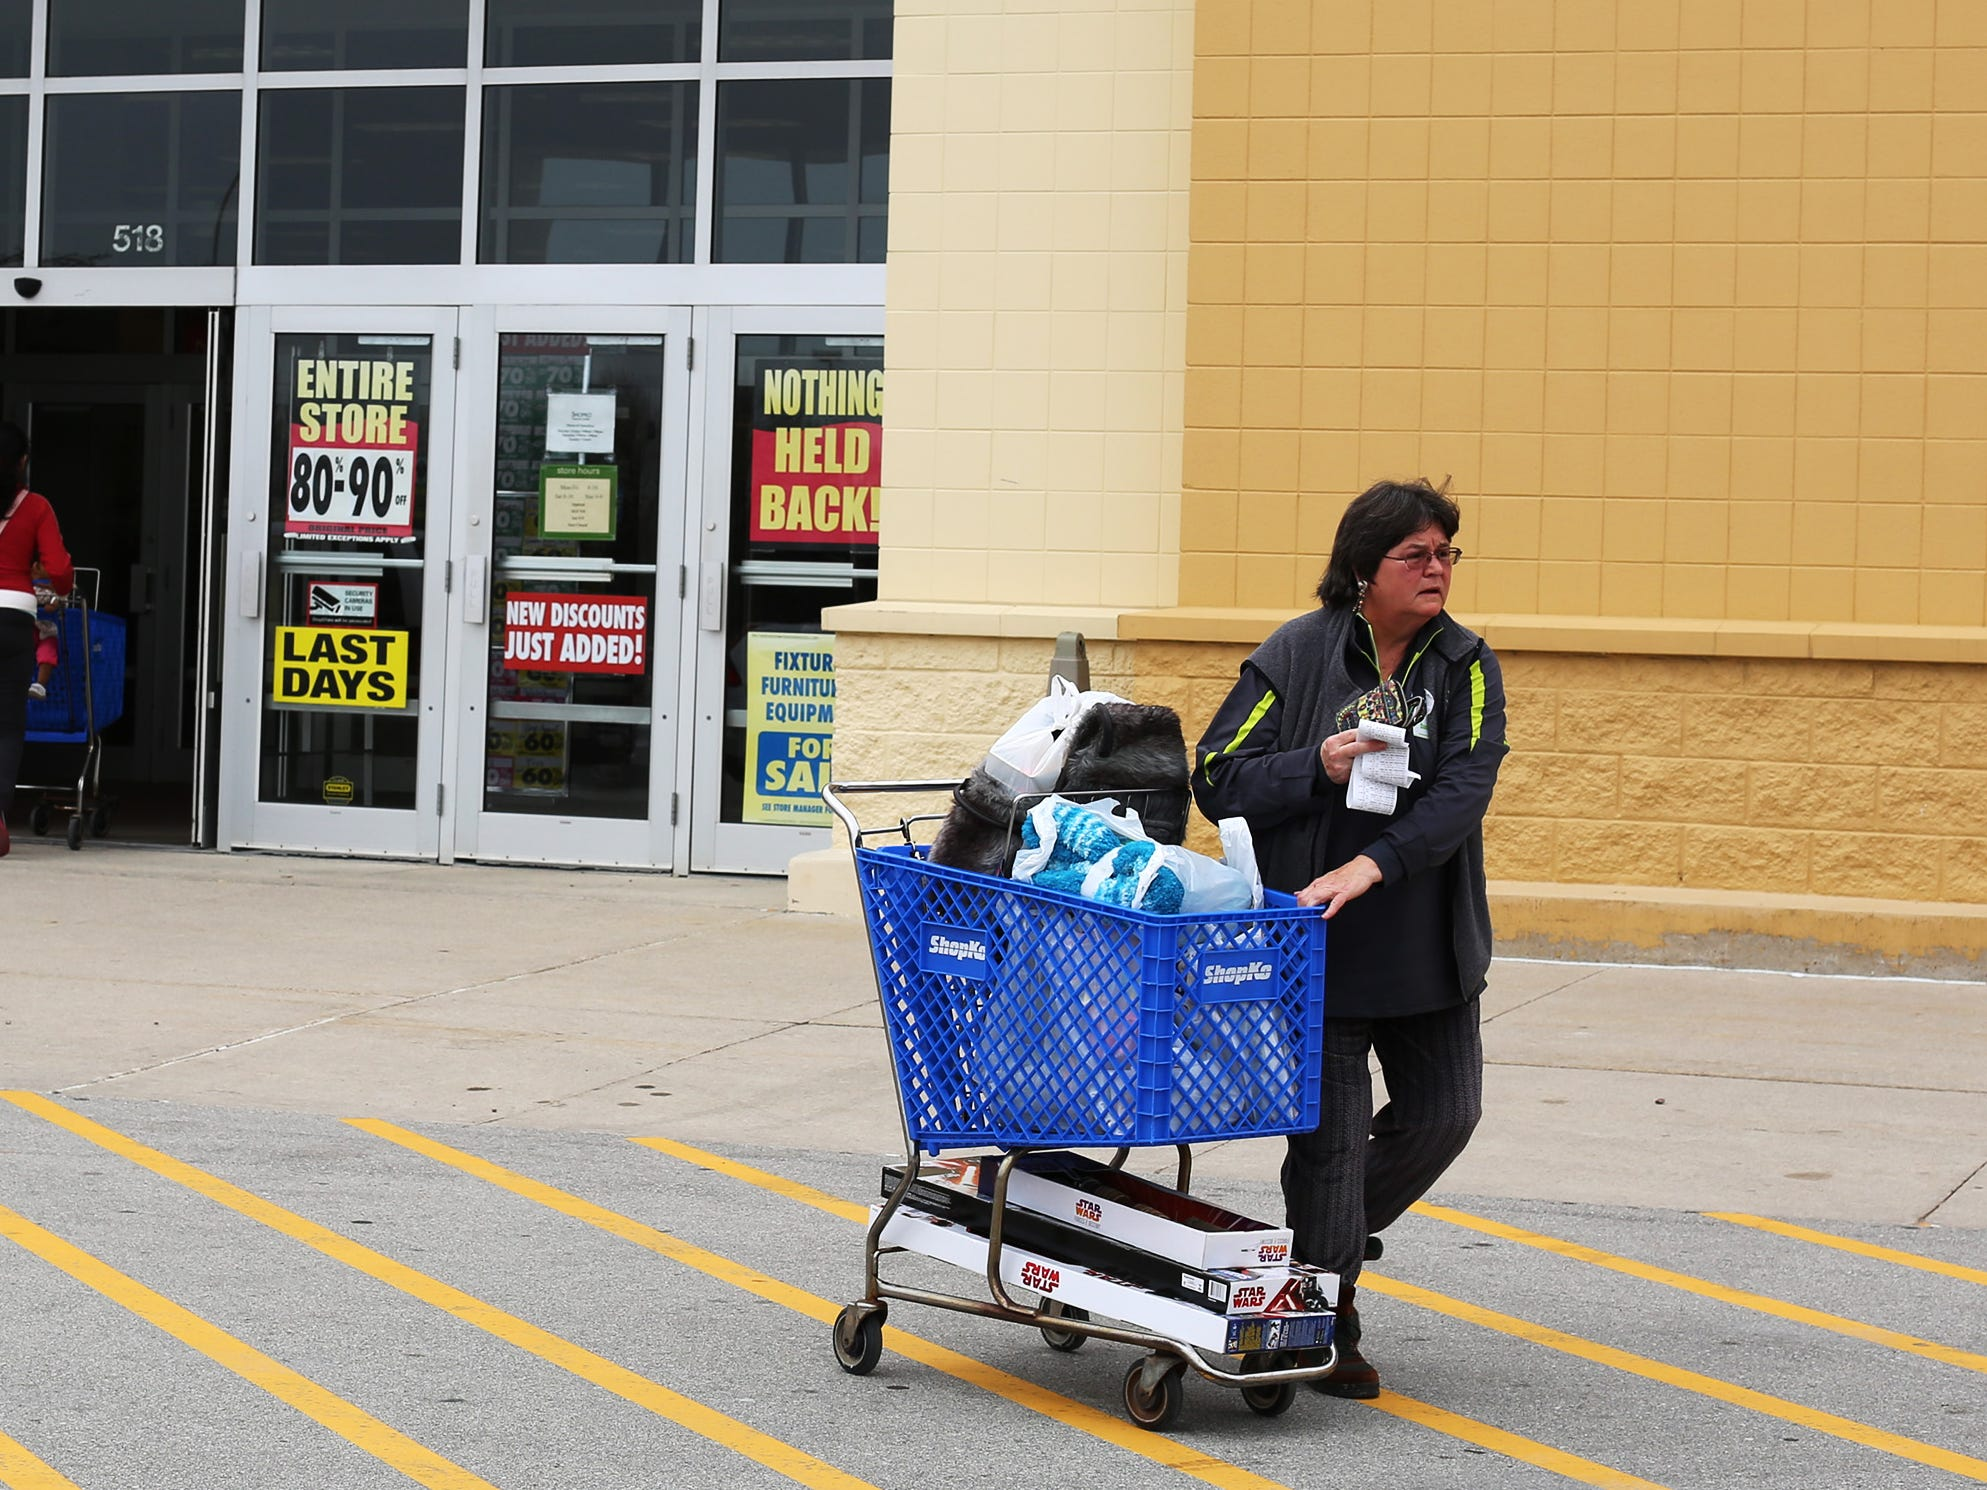 """Susan Weiss of Sheboygan leaves ShopKo, Saturday, May 11, 2019, in Sheboygan, Wis. Weiss said, """"I really liked ShopKo and over the years I got some really good deals.  I am going to miss  it.  It was really fun today. I saved $497 saved and paid $131."""""""